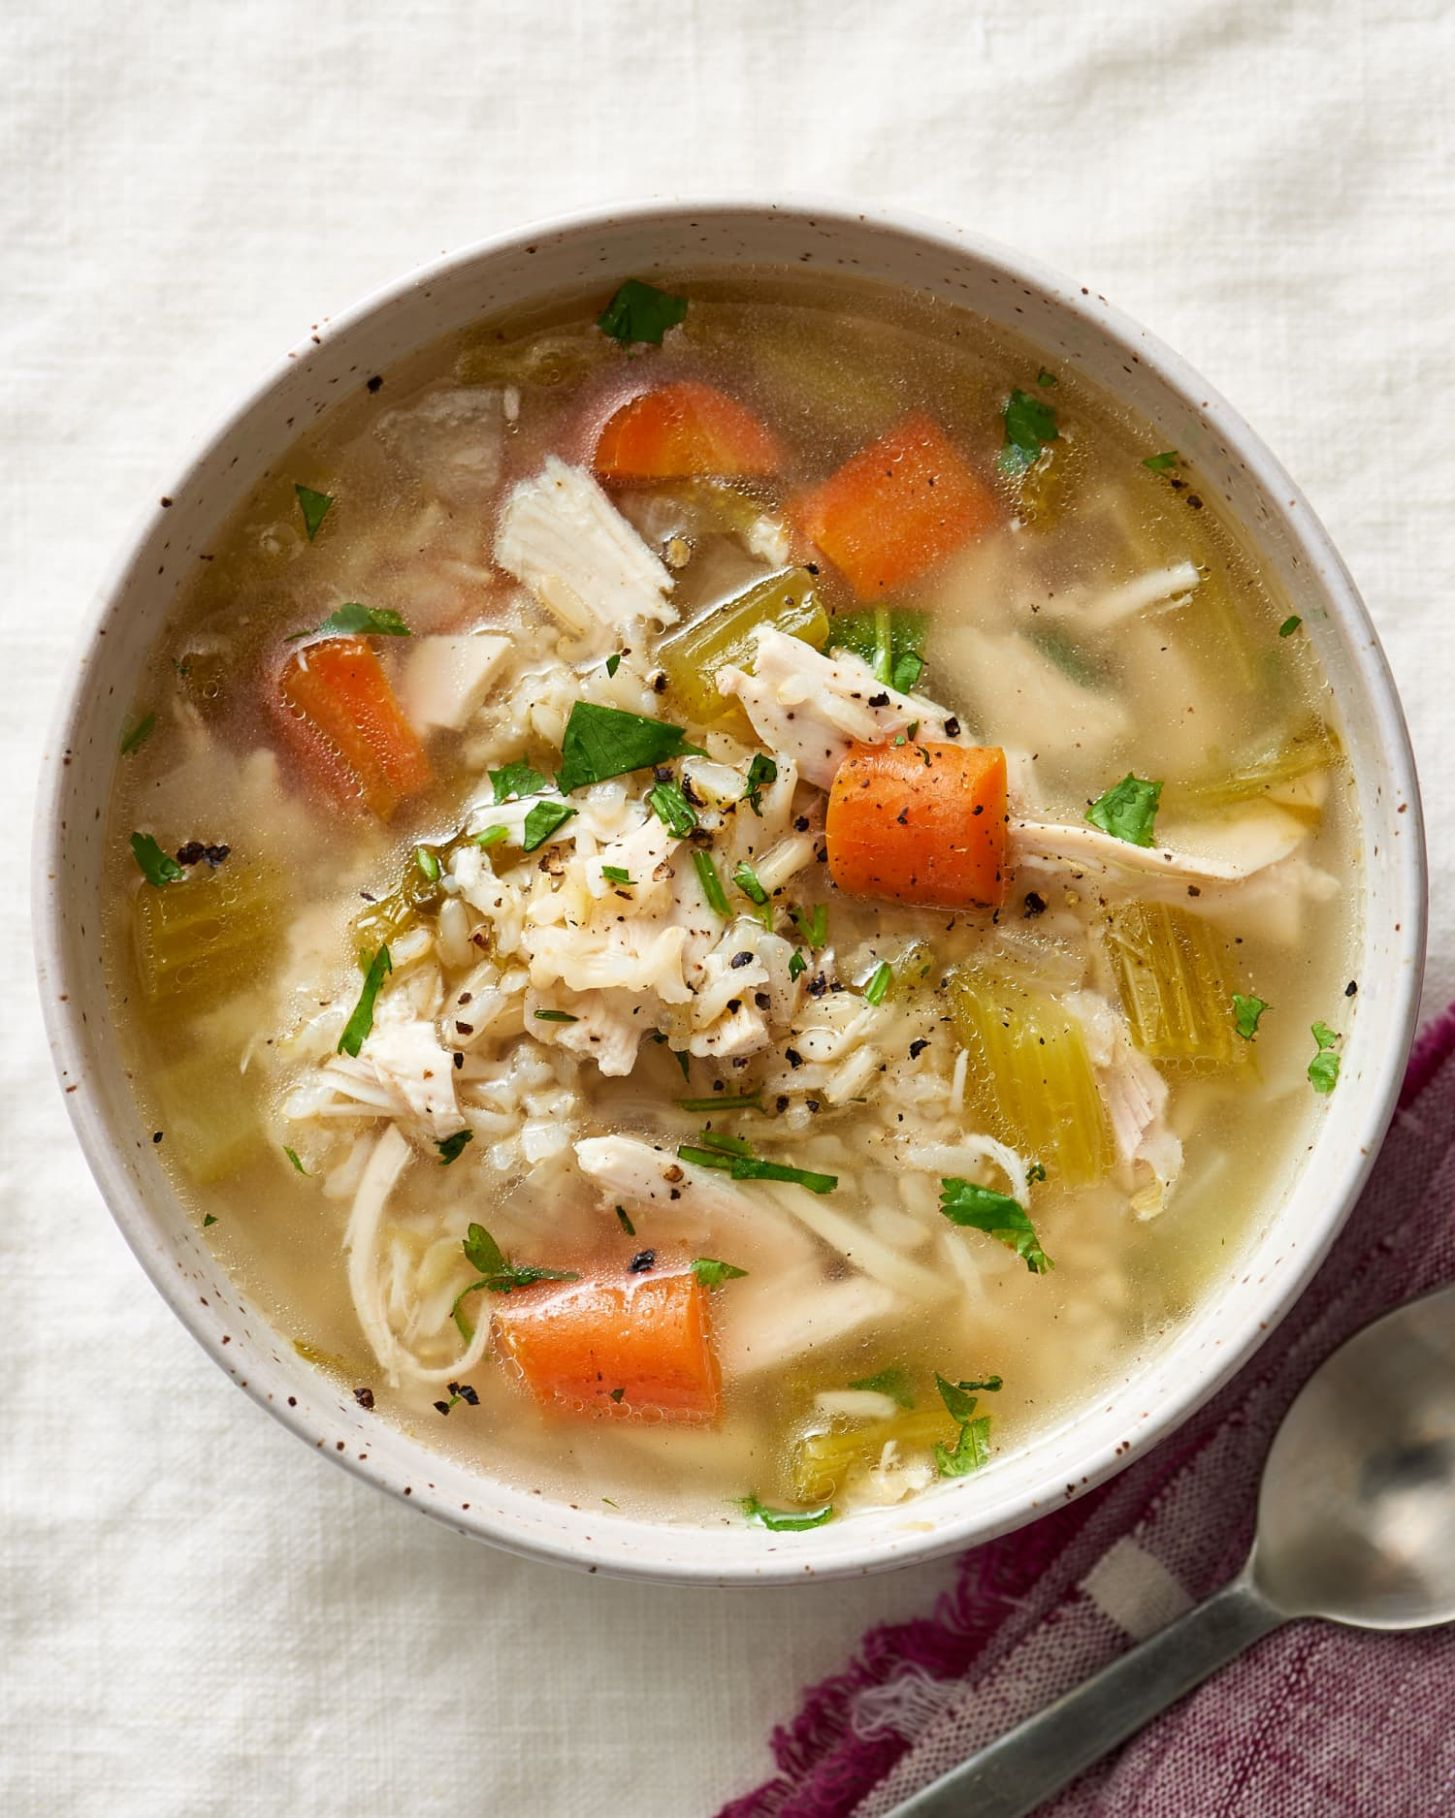 How To Make Chicken and Rice Soup - Soup Recipes Kitchn